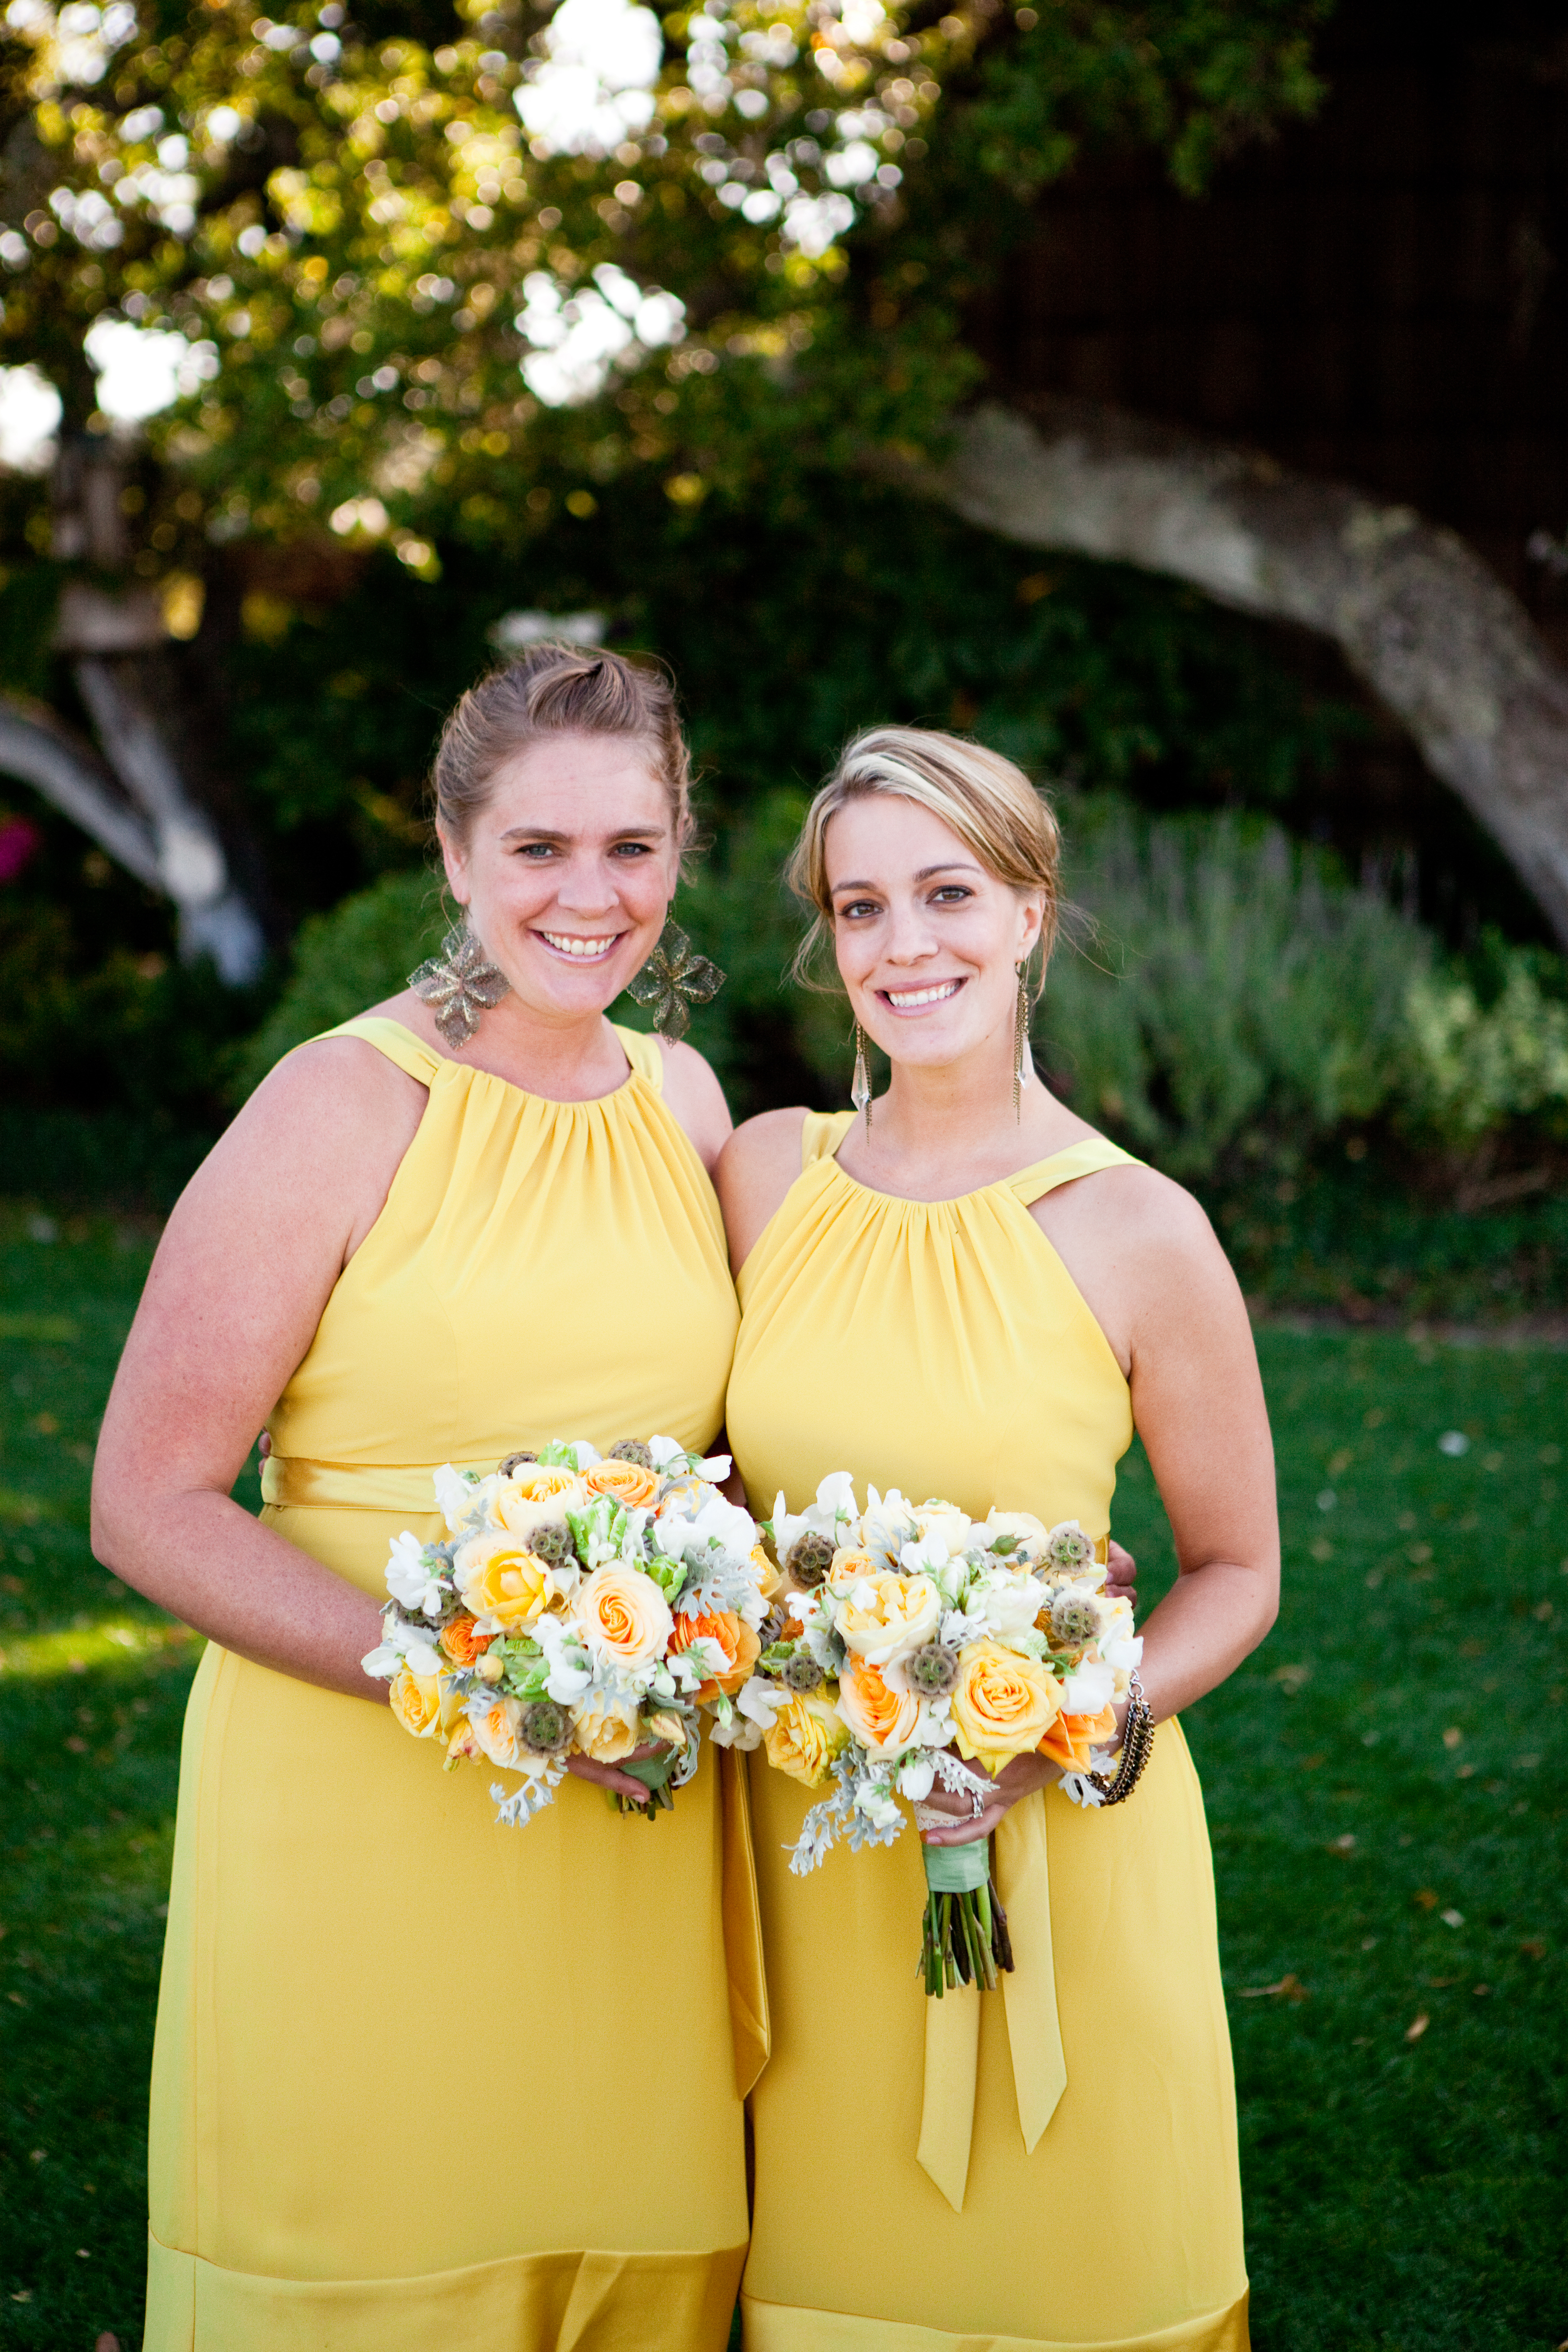 Bridesmaid Dresses, Fashion, Real Weddings, Wedding Style, yellow, Summer Weddings, West Coast Real Weddings, Garden Real Weddings, Summer Real Weddings, Garden Weddings